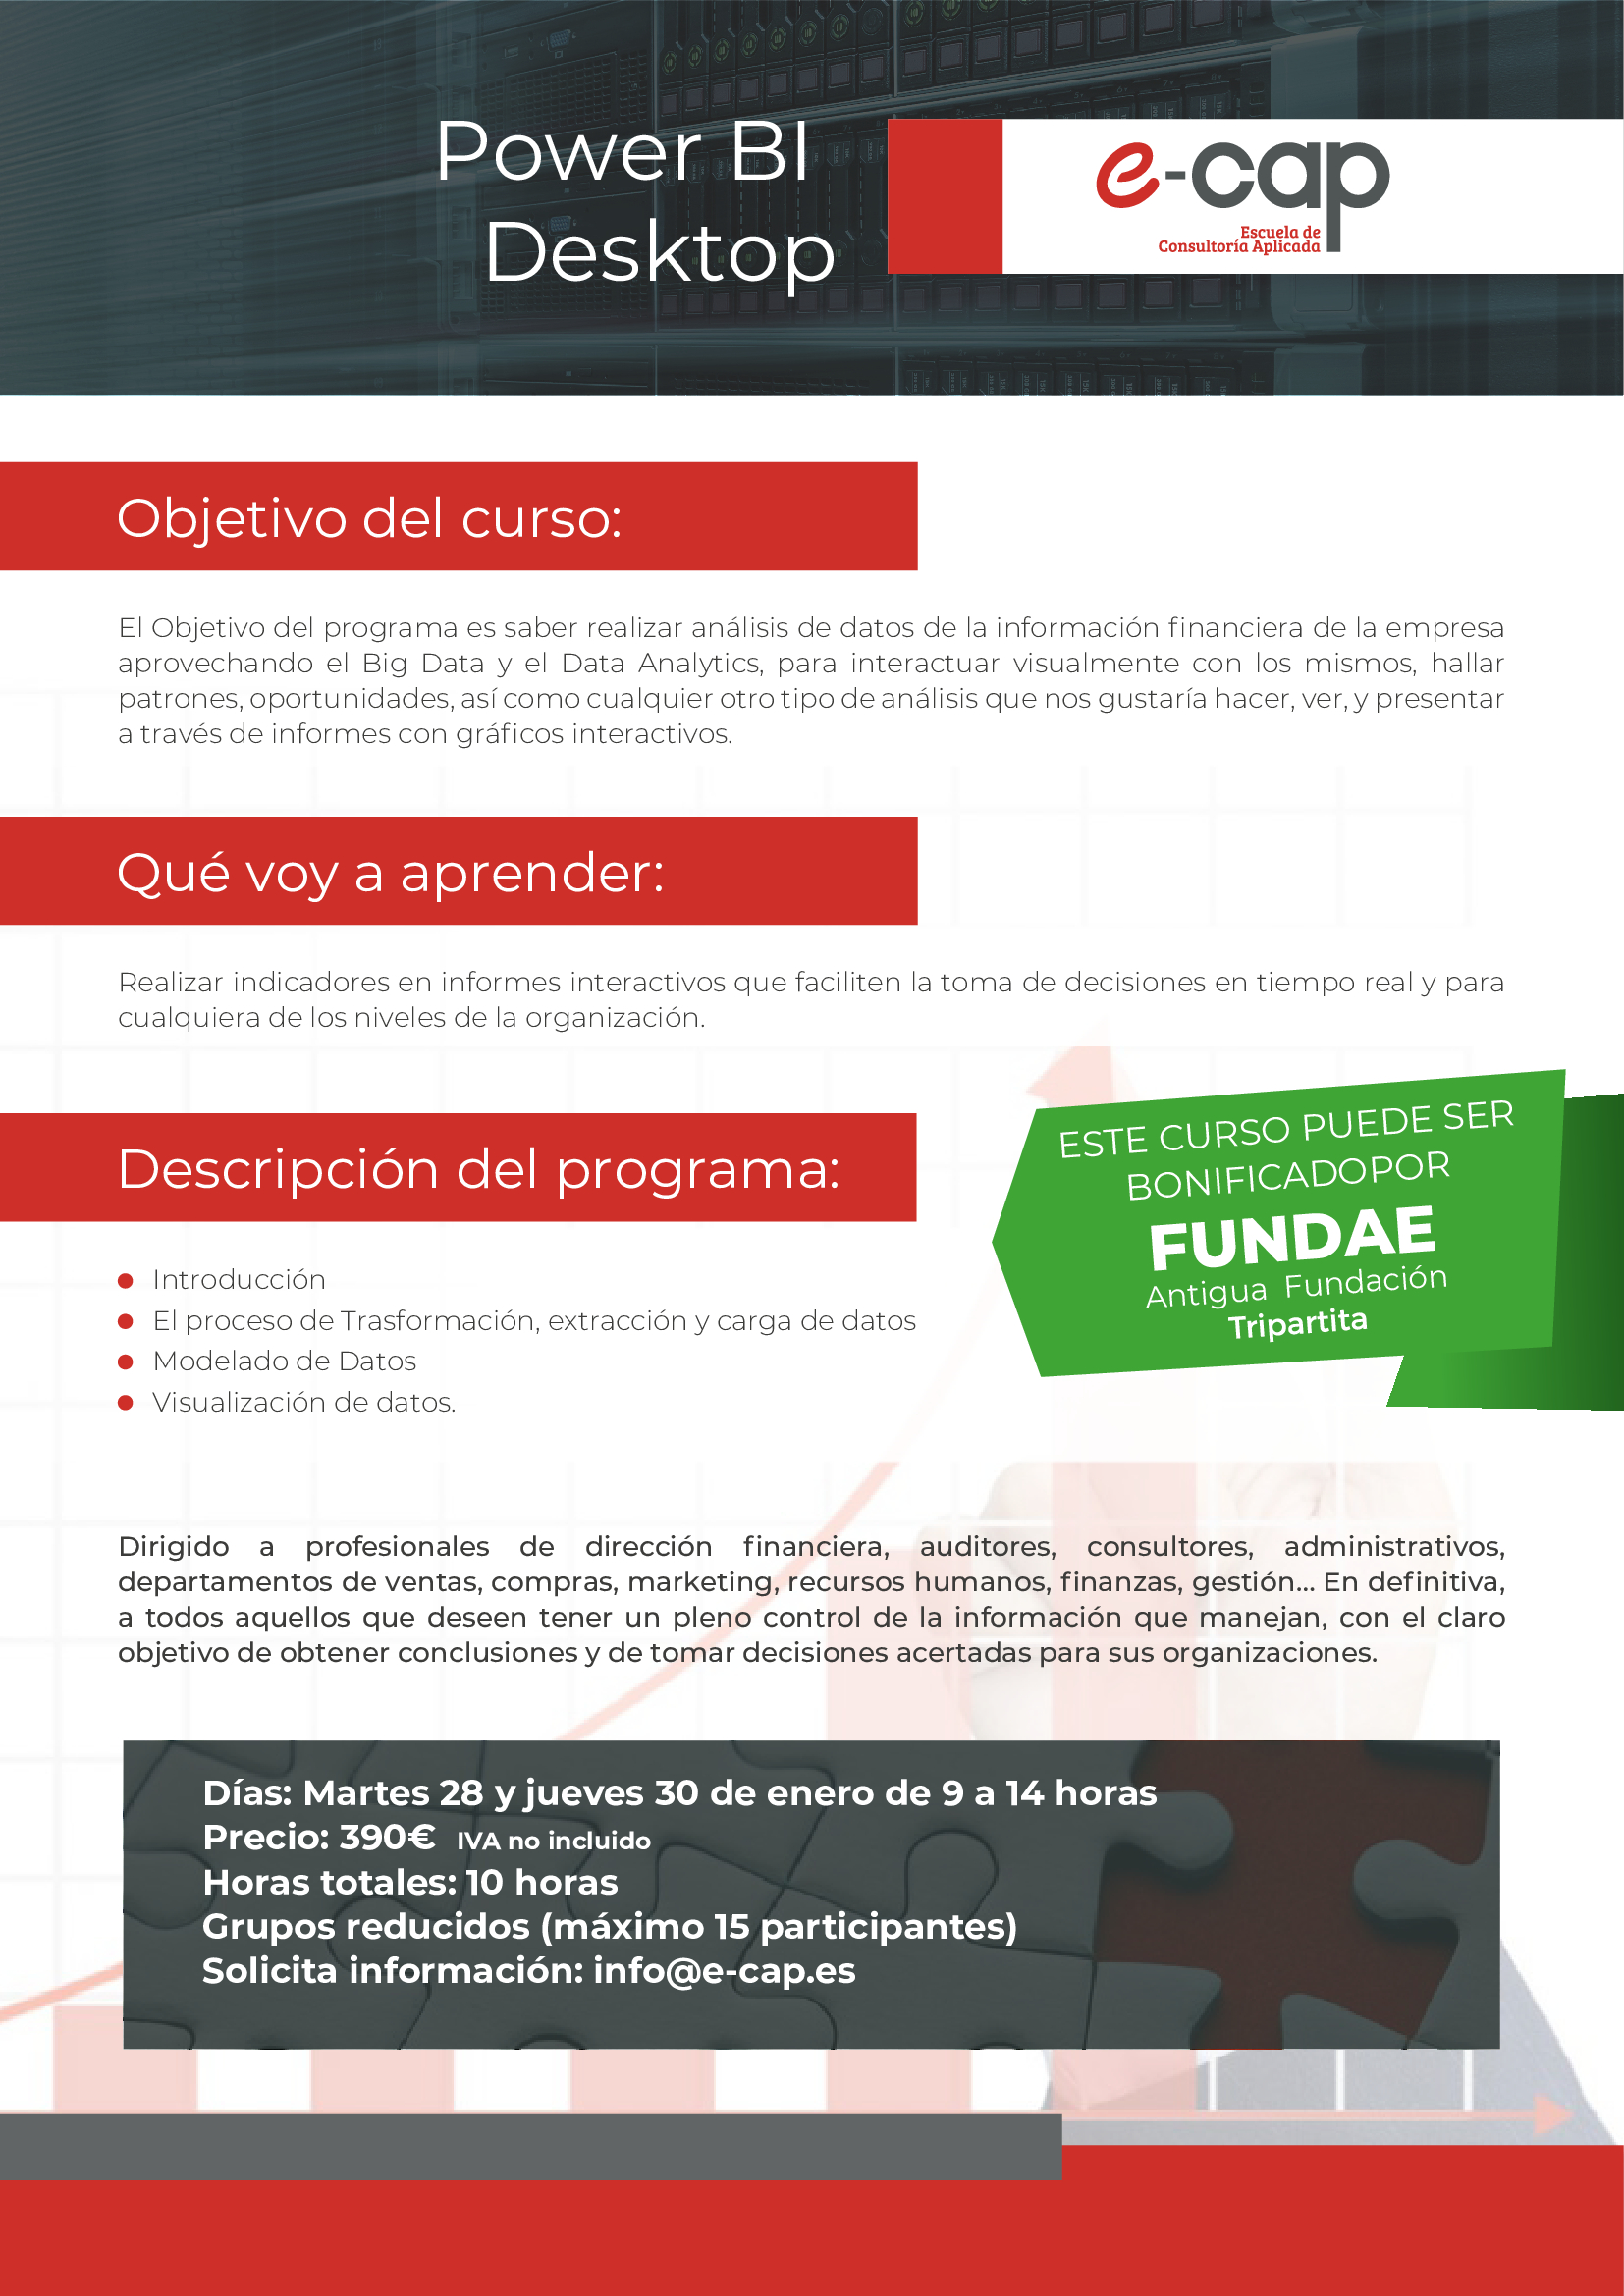 curso power BI Destkop enero 2020